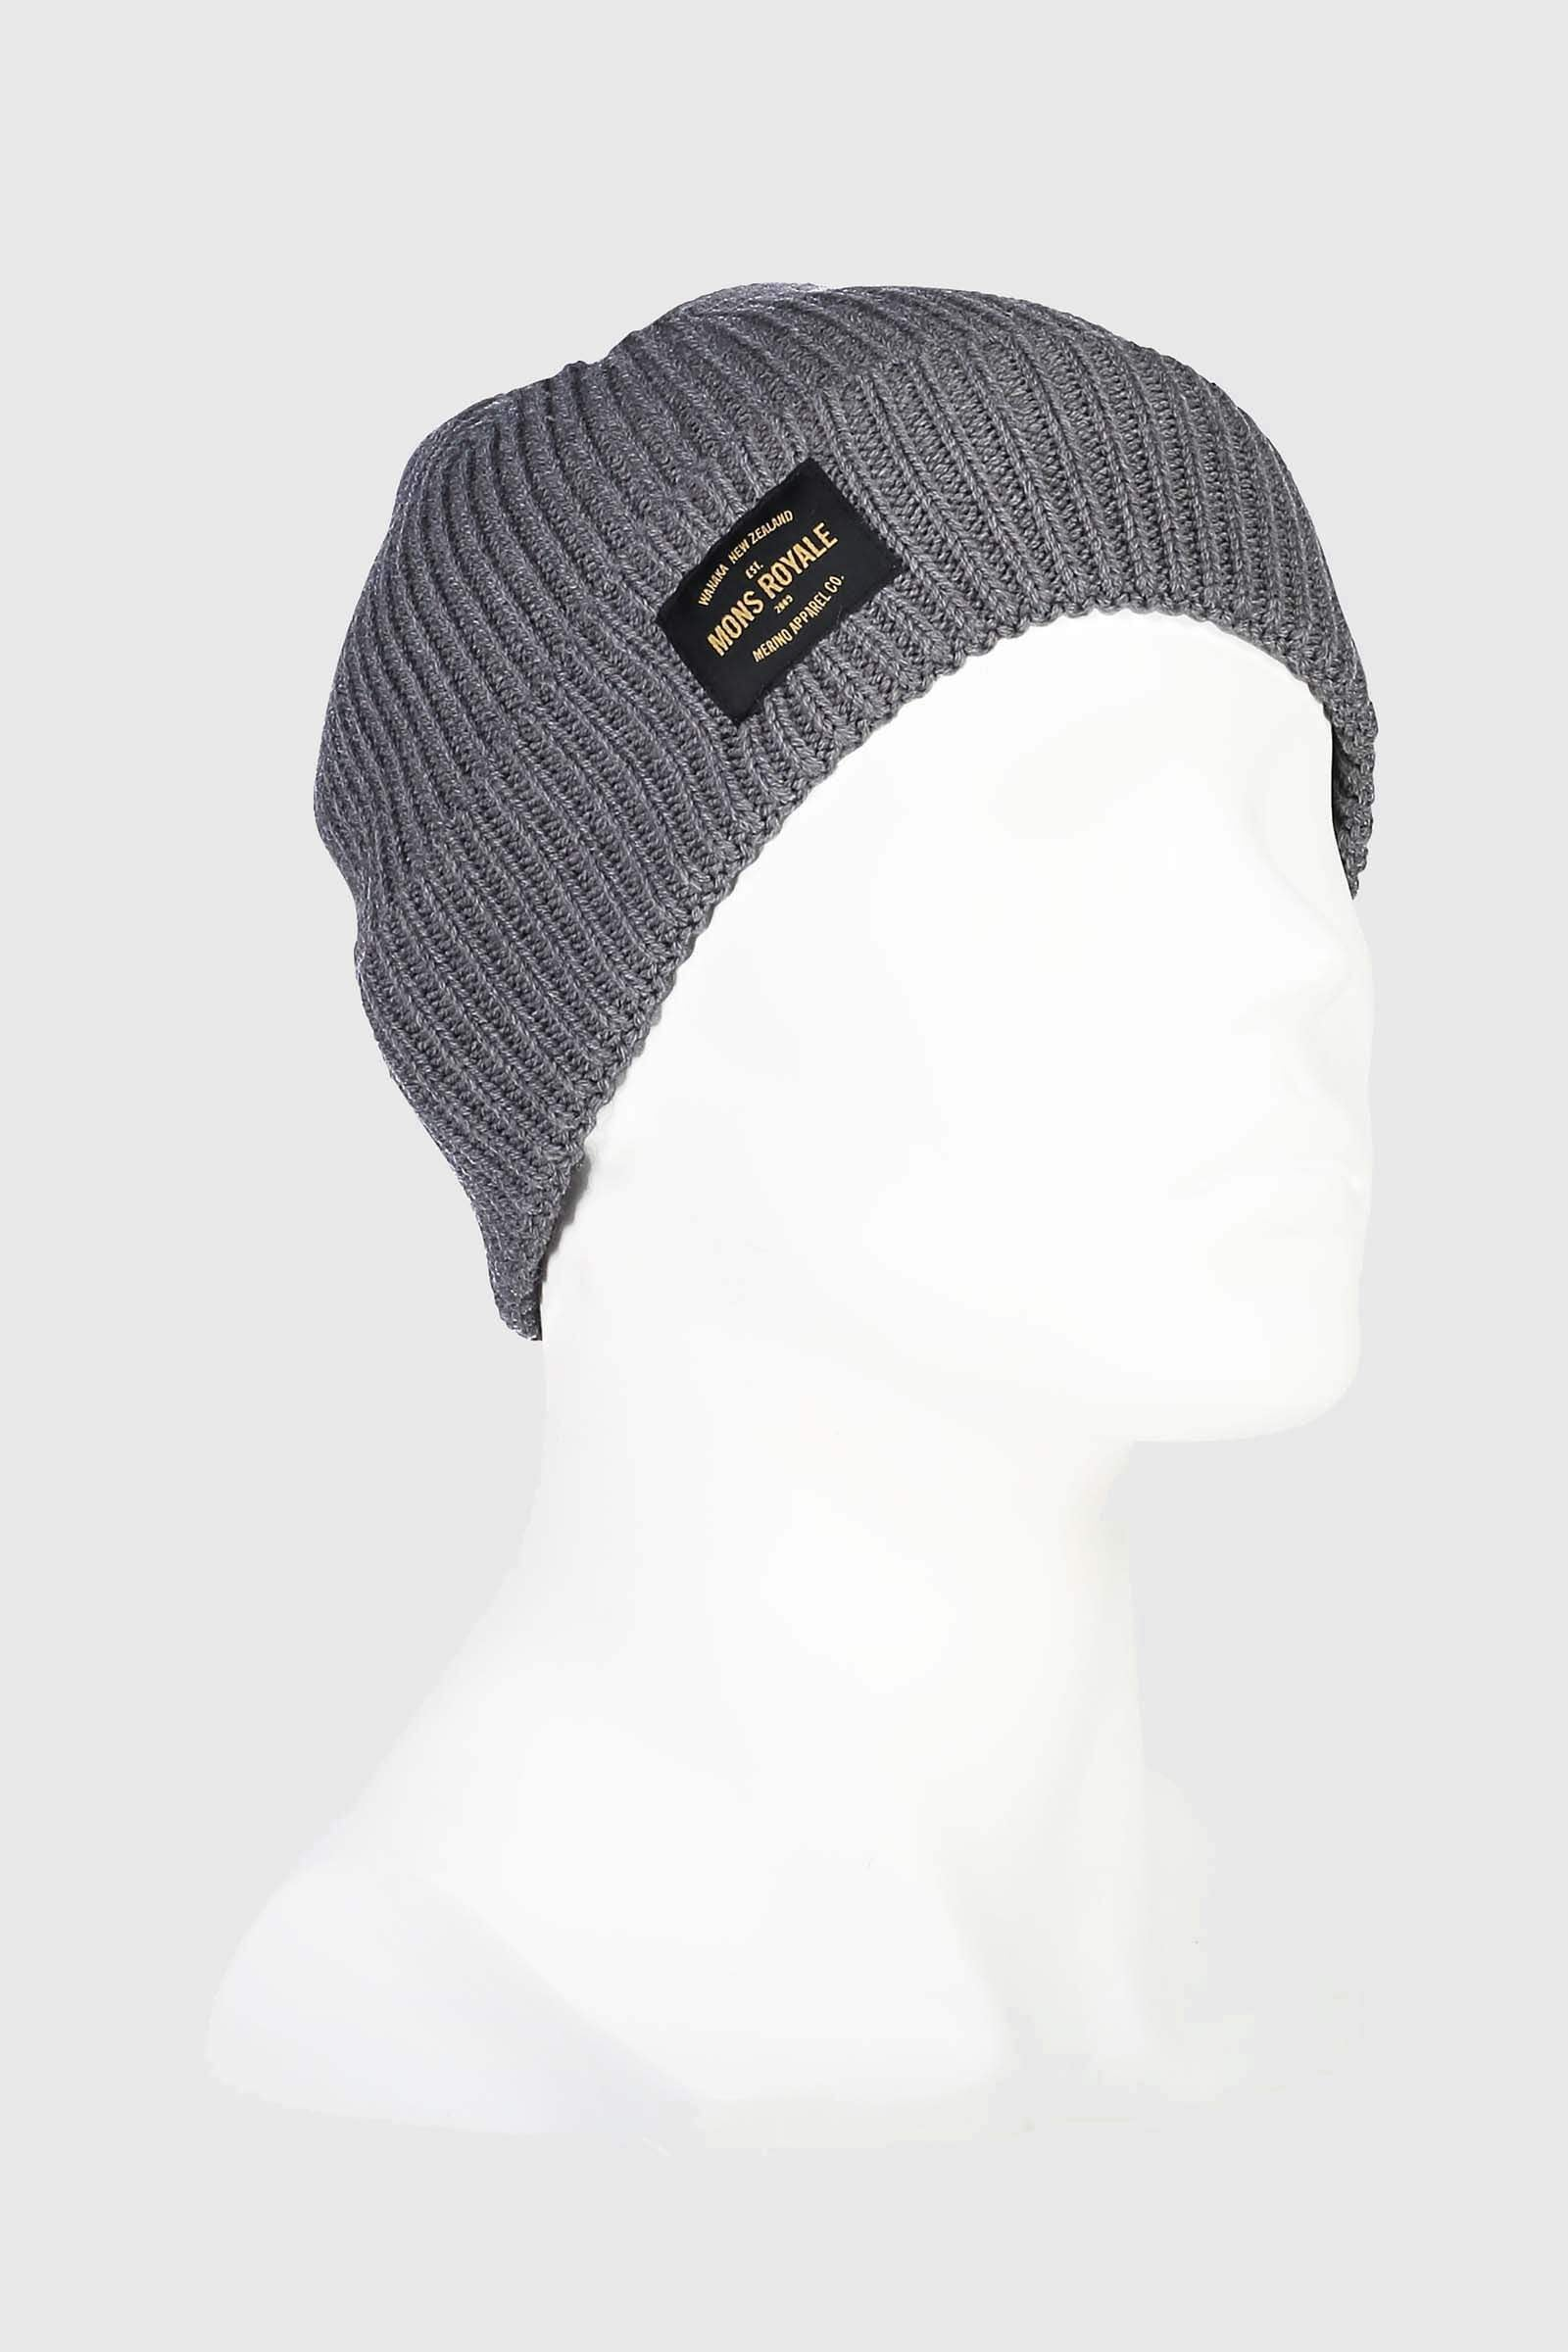 Fisherman's Beanie - Charcoal